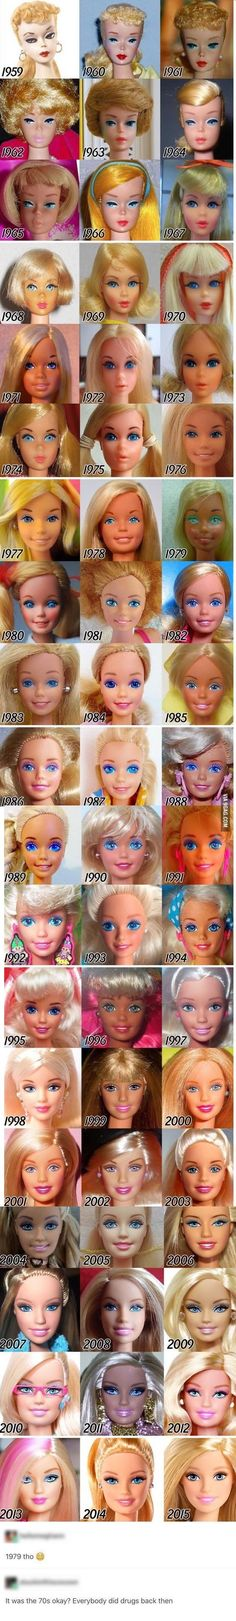 Barbies from 1959 - 2015 #Nostalgia!